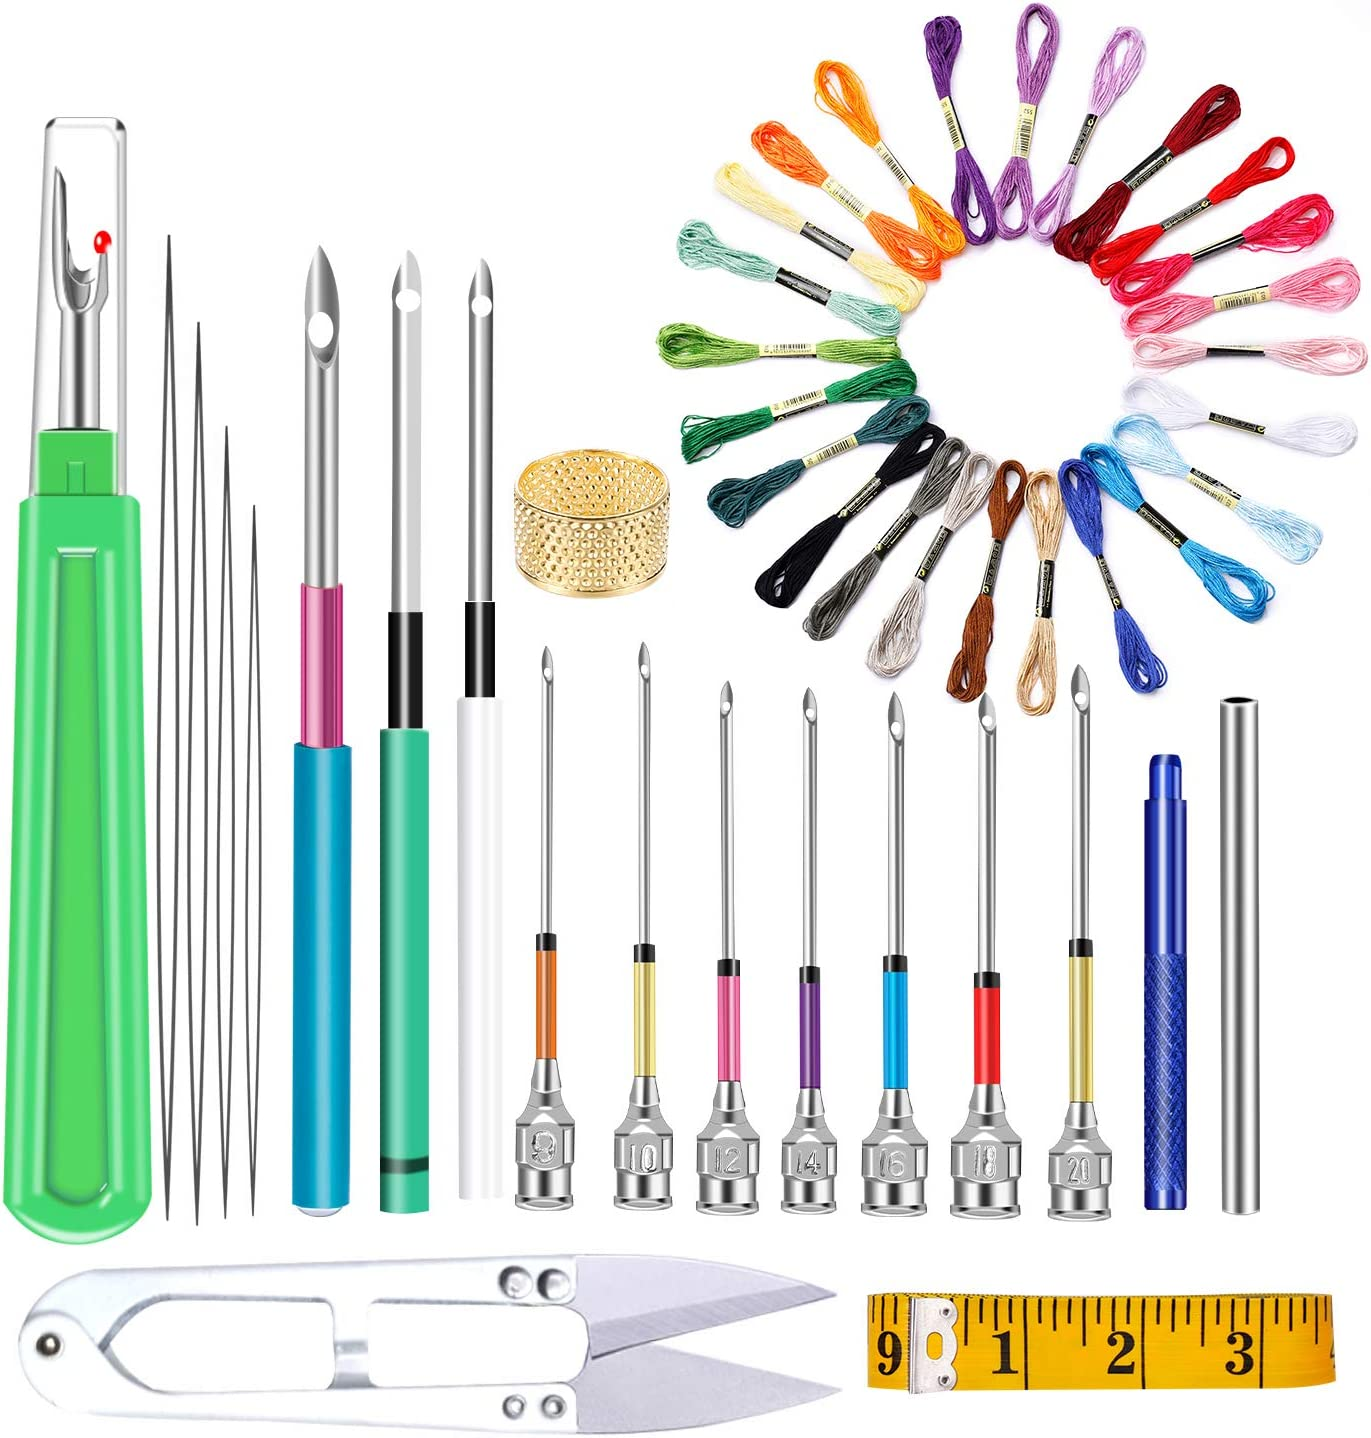 Best for experts: Punch needle kit